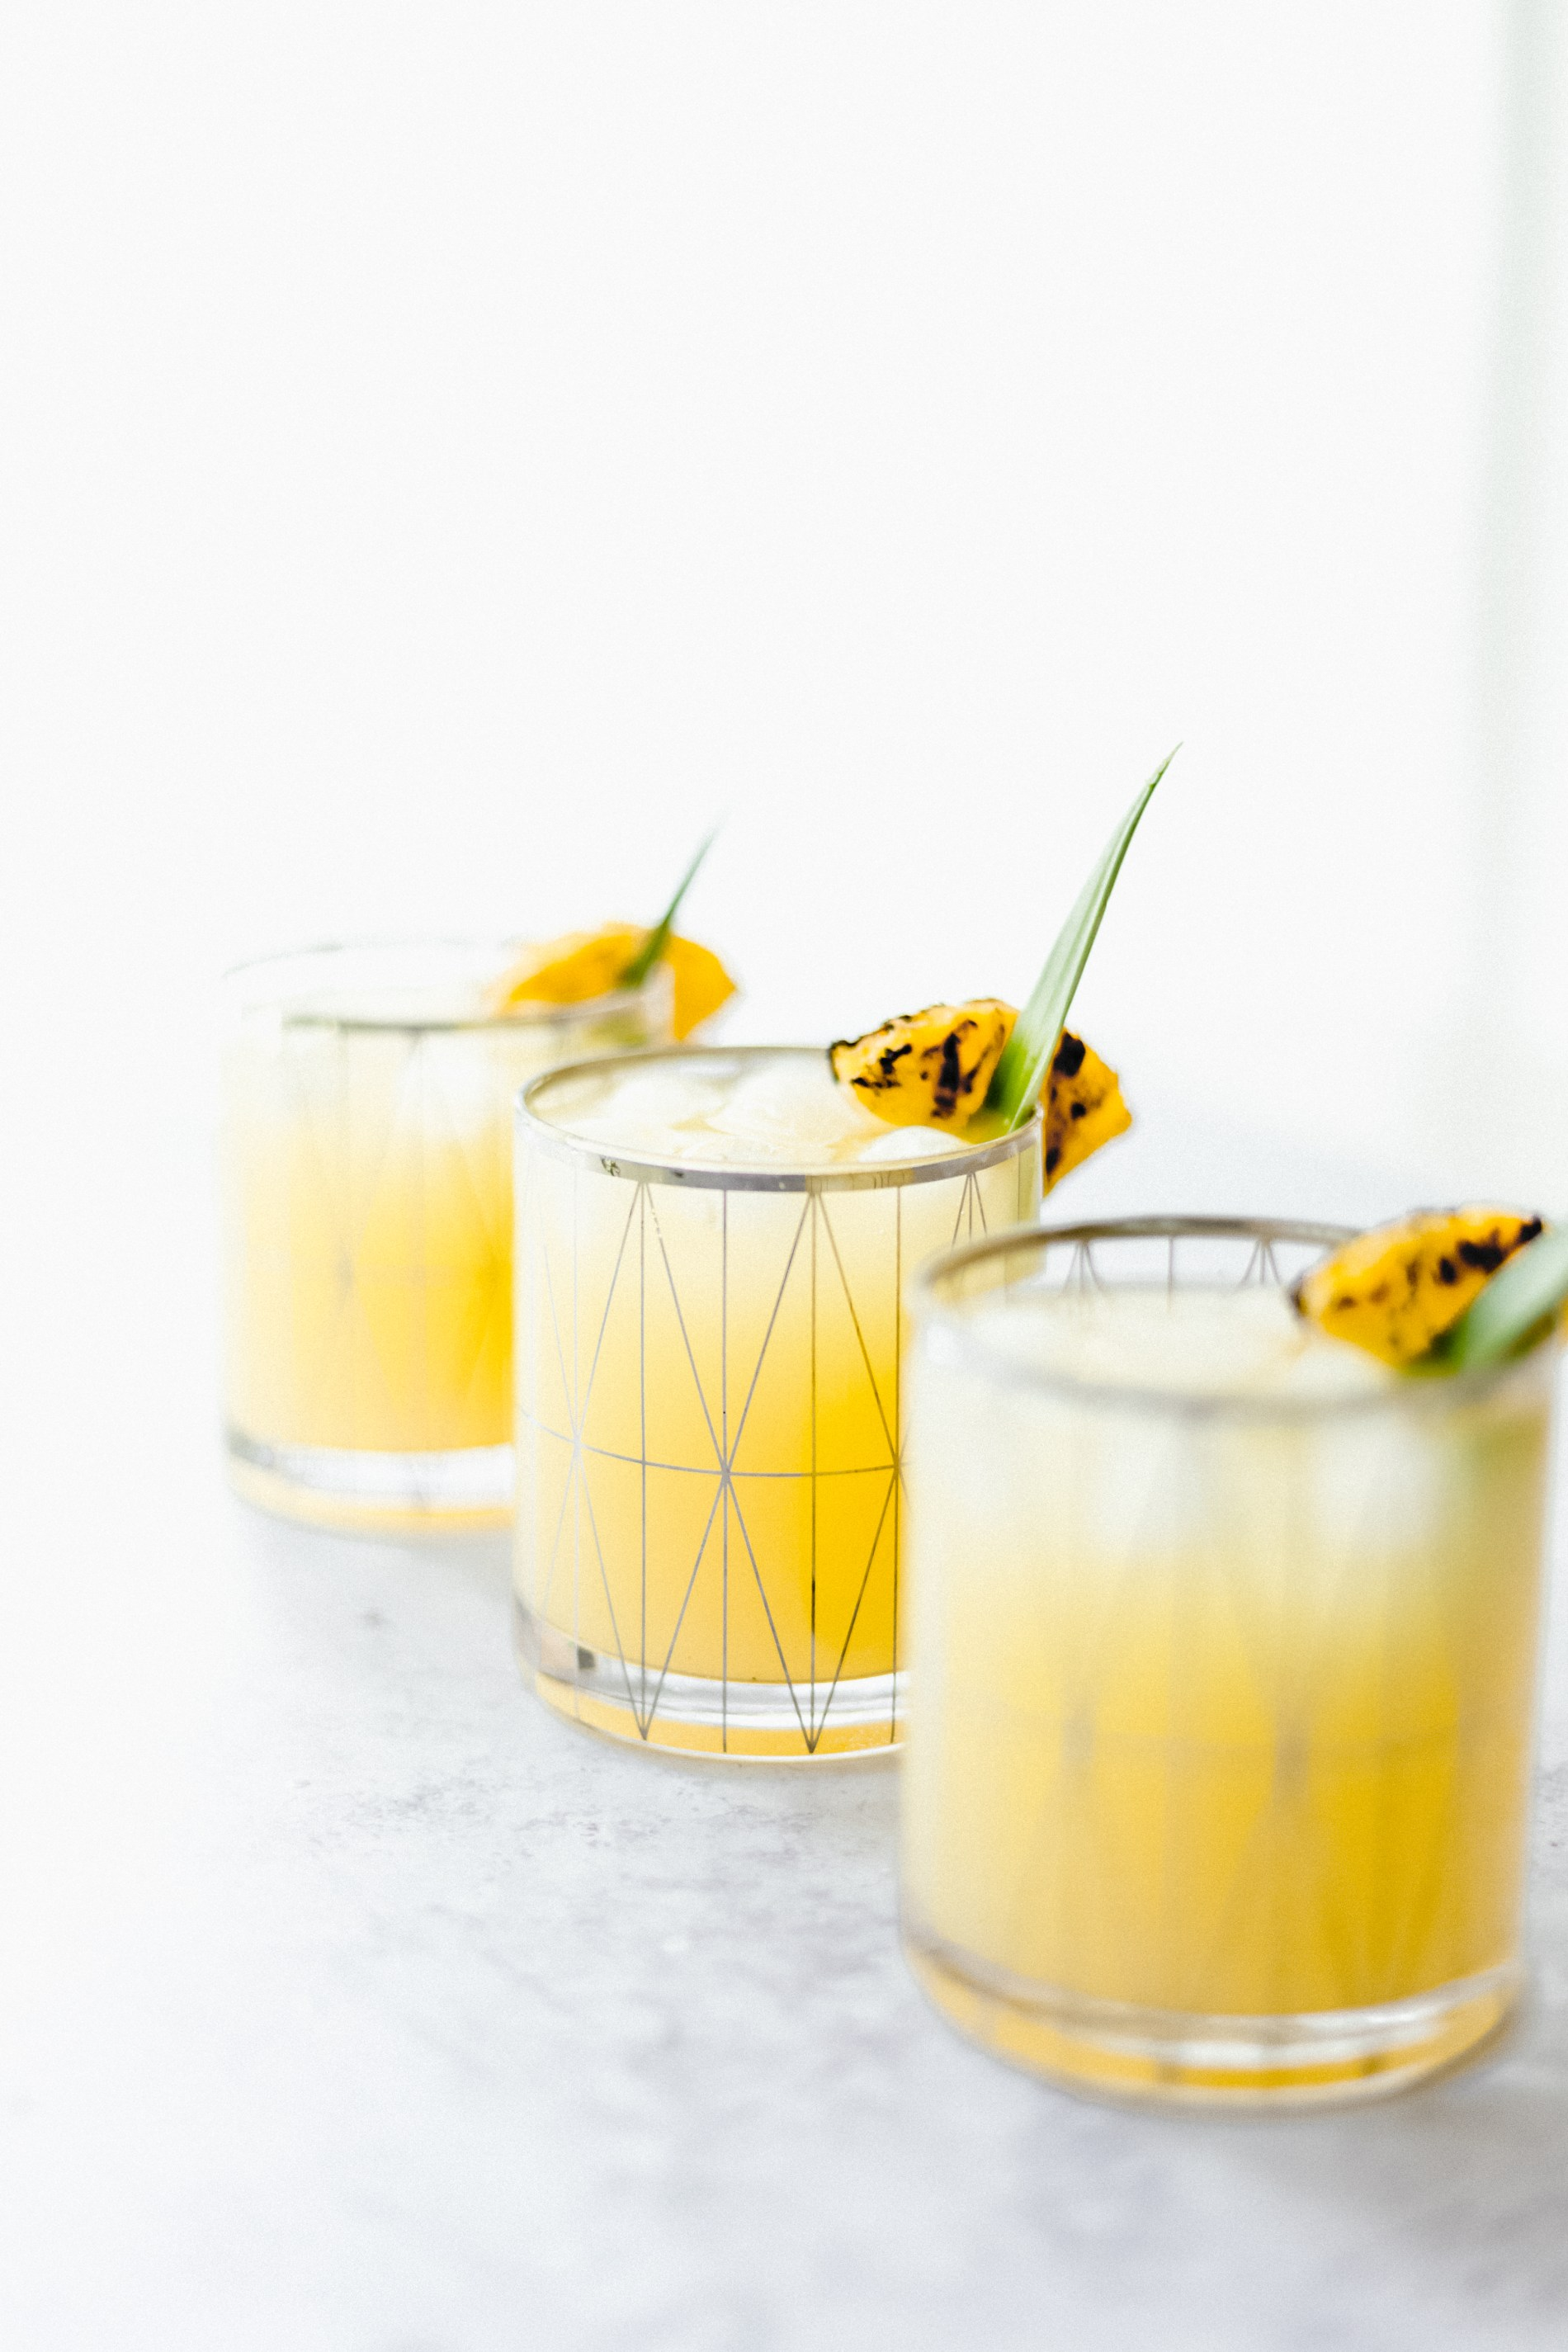 The cocktail that will be on repeat all summer long- Spiked Grilled Pineapple Lemonade! sweetened with Maple Syrup and a splash of Malibu Rum. #summercocktails #cocktailrecipes #pineapplecocktails #lemonade #drinkphotography